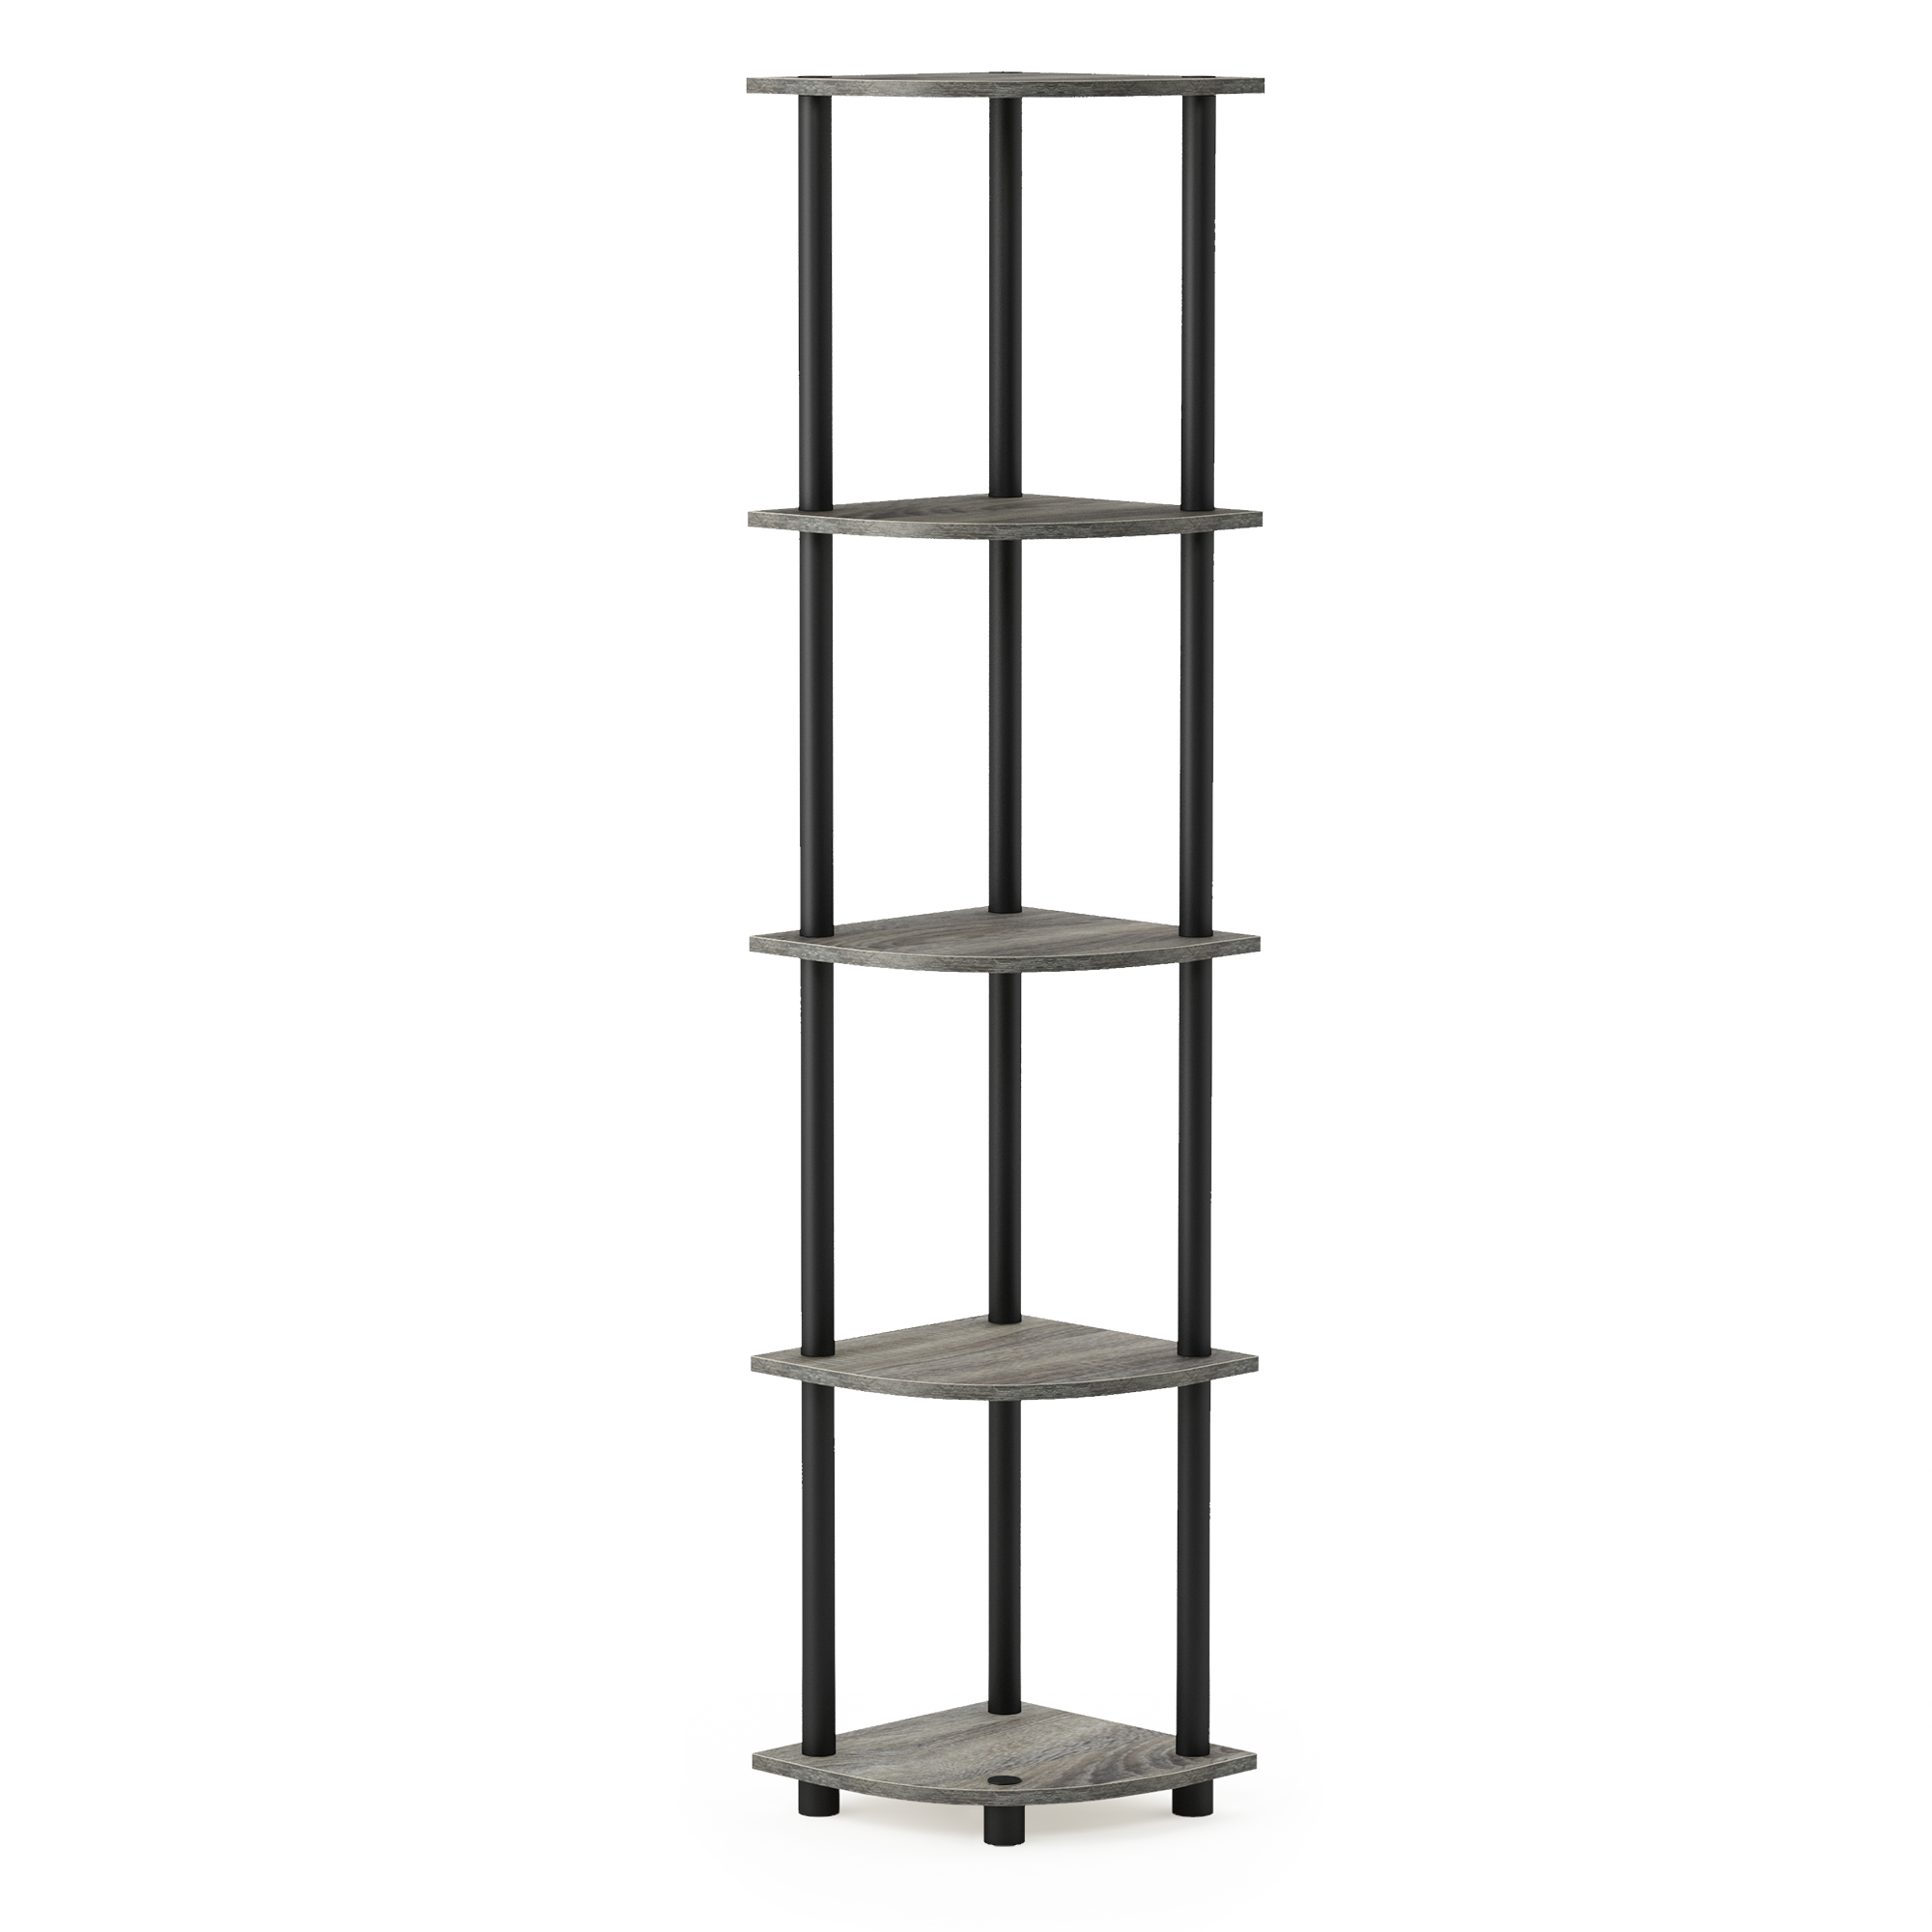 Furinno Turn-N-Tube Corner Display Rack Multipurpose Shelving Unit, Multiple Colors